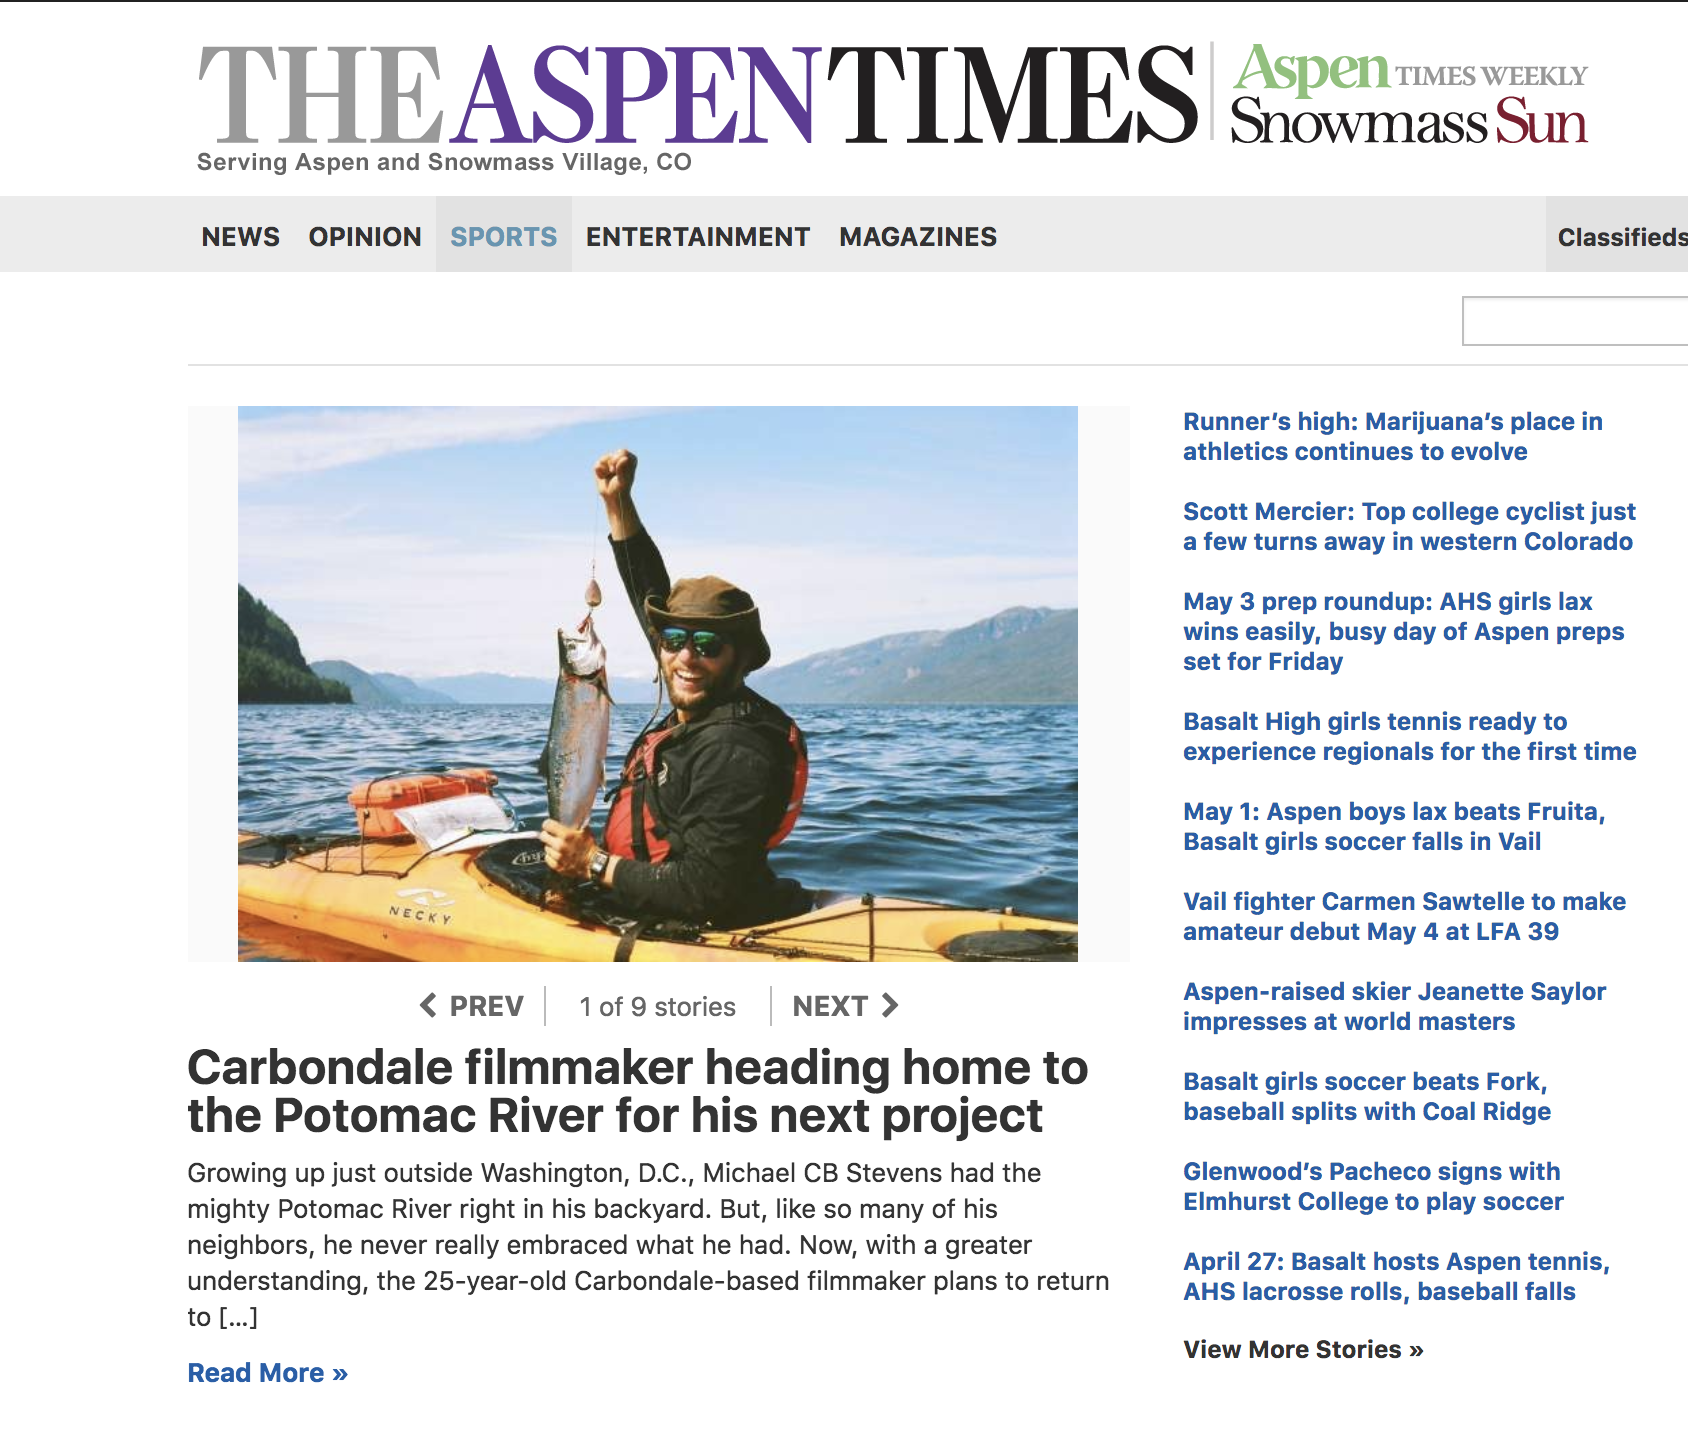 https://www.aspentimes.com/news/sports/carbondale-filmmaker-heading-home-to-the-potomac-river-for-his-next-project/